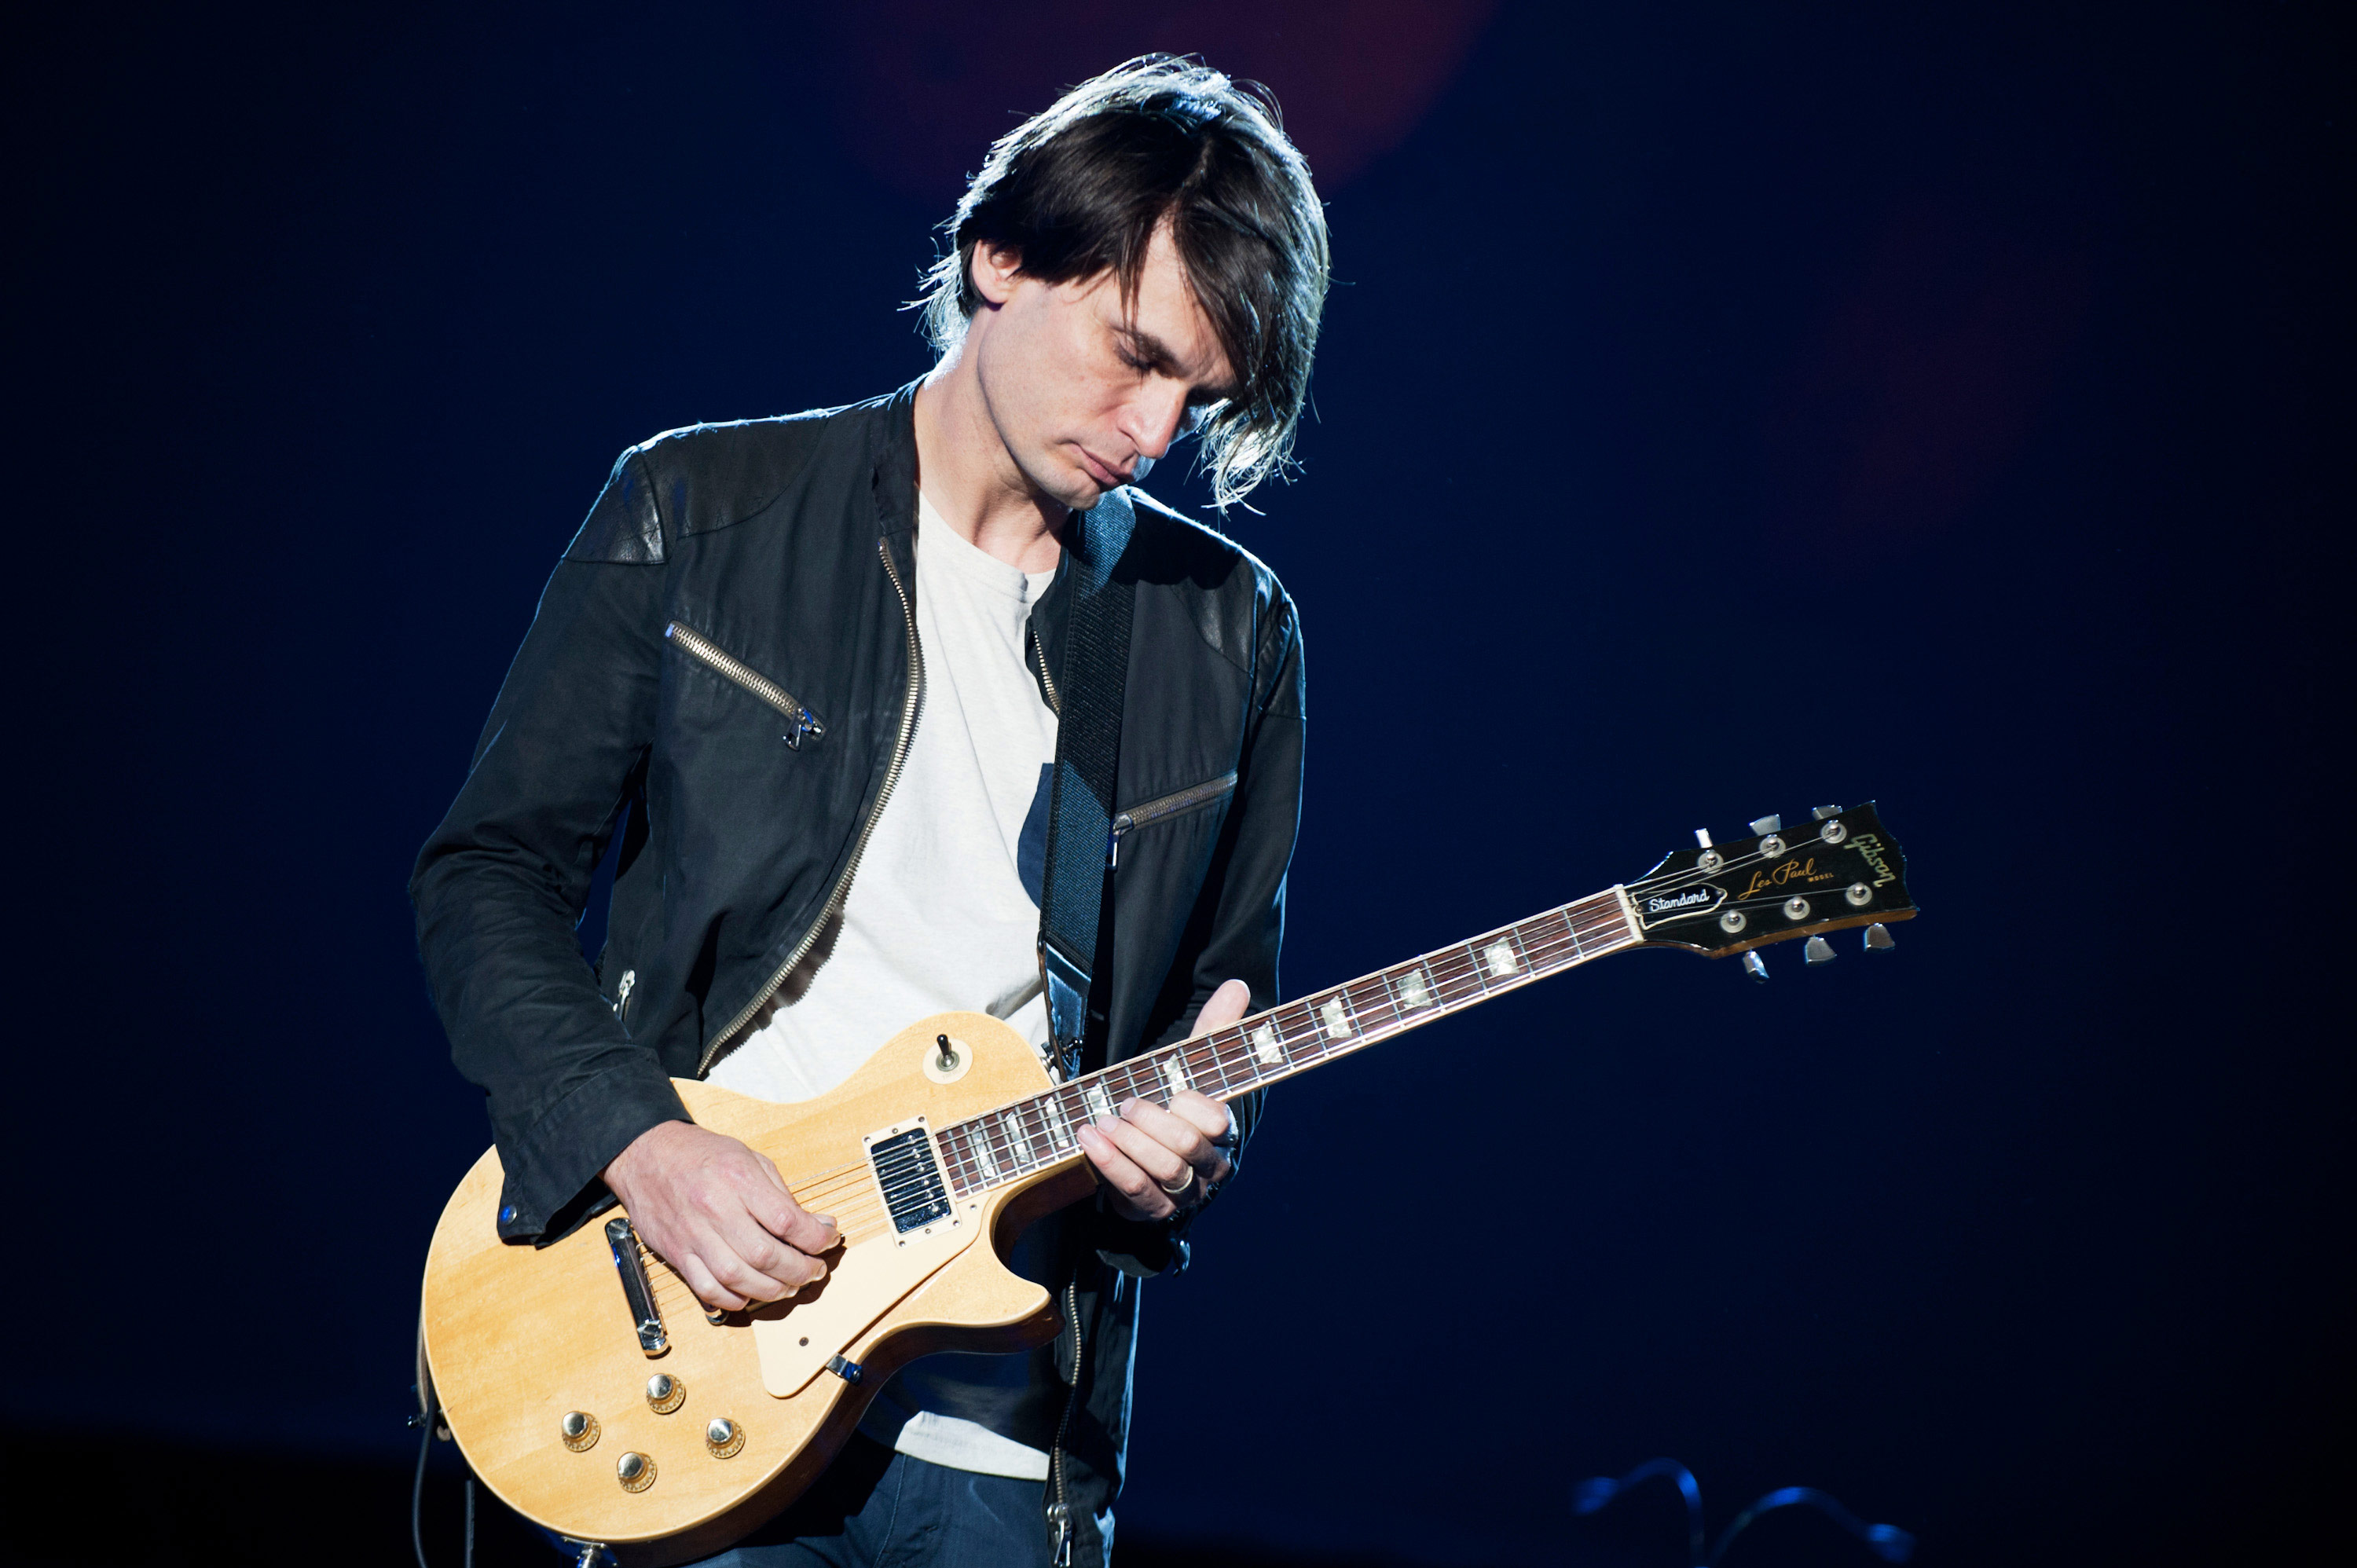 jonny-greenwood-will-premiere-water-with-the-australian-chamber-orchestra-in-dublin-on-october-2